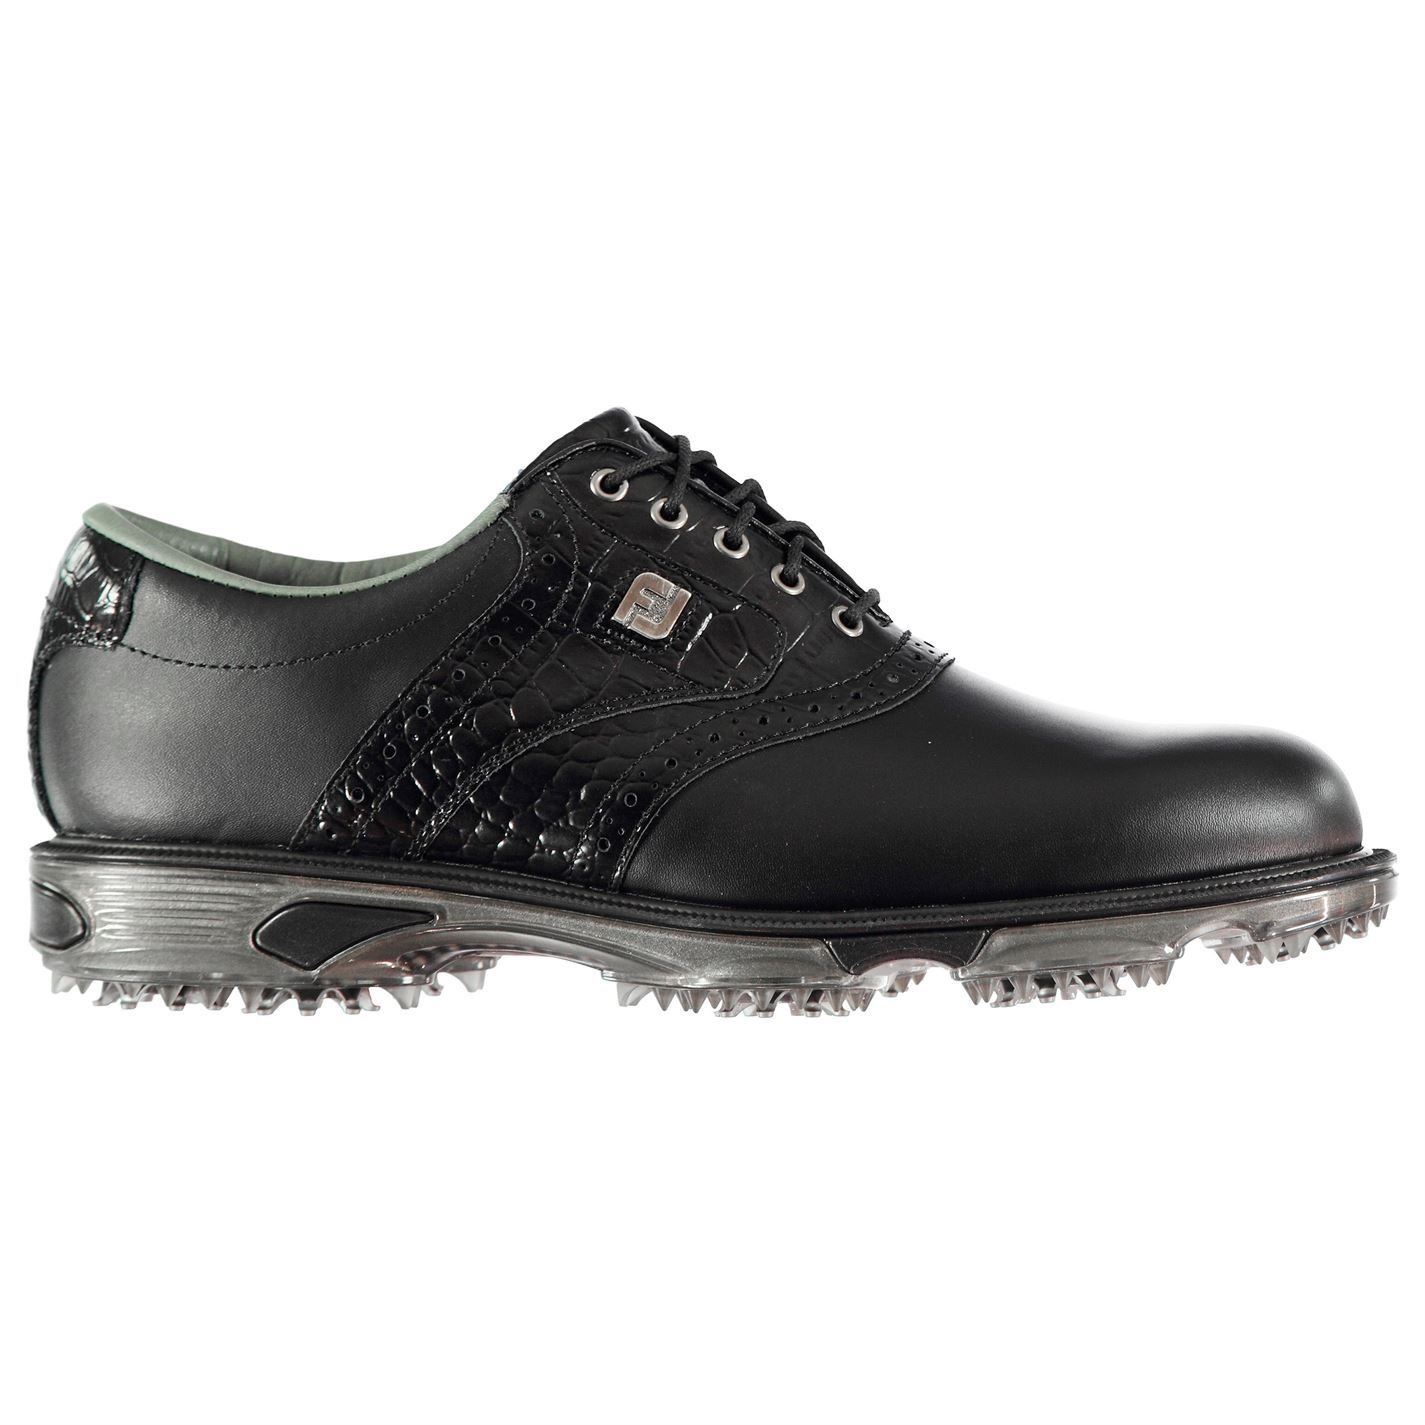 Footjoy-DryJoys-Tour-Golf-Shoes-Mens-Spikes-Footwear thumbnail 6